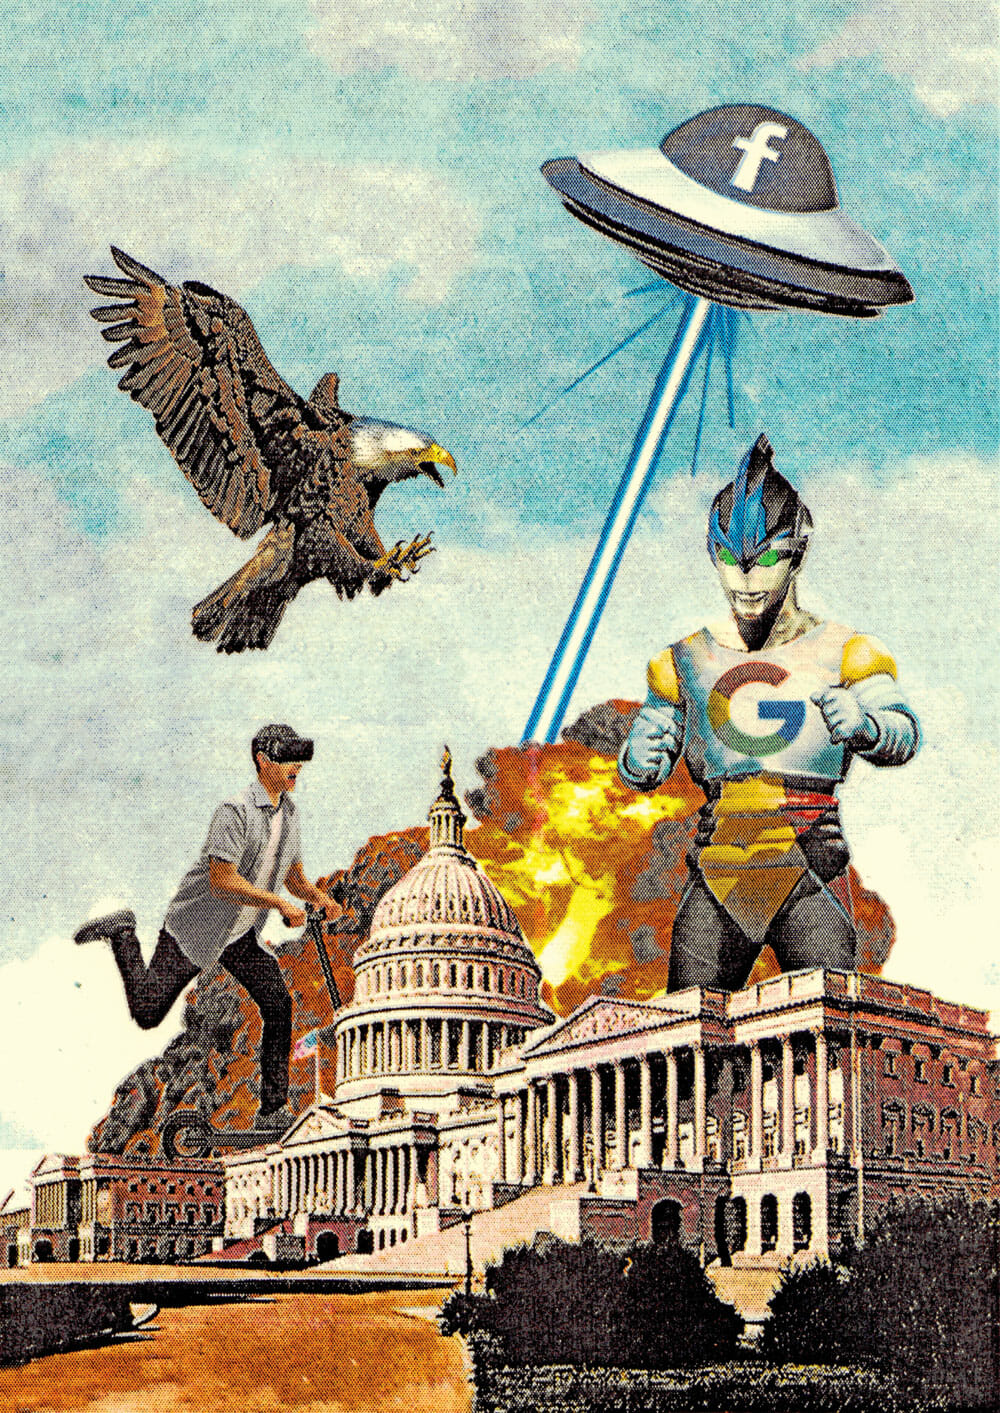 A flying saucer and a ten-story robot emblazoned with the Facebook and Google logos destroy the Capitol Building alongside a giant eagle and a man riding an electric scooter with virtual reality goggles. There are explosions.